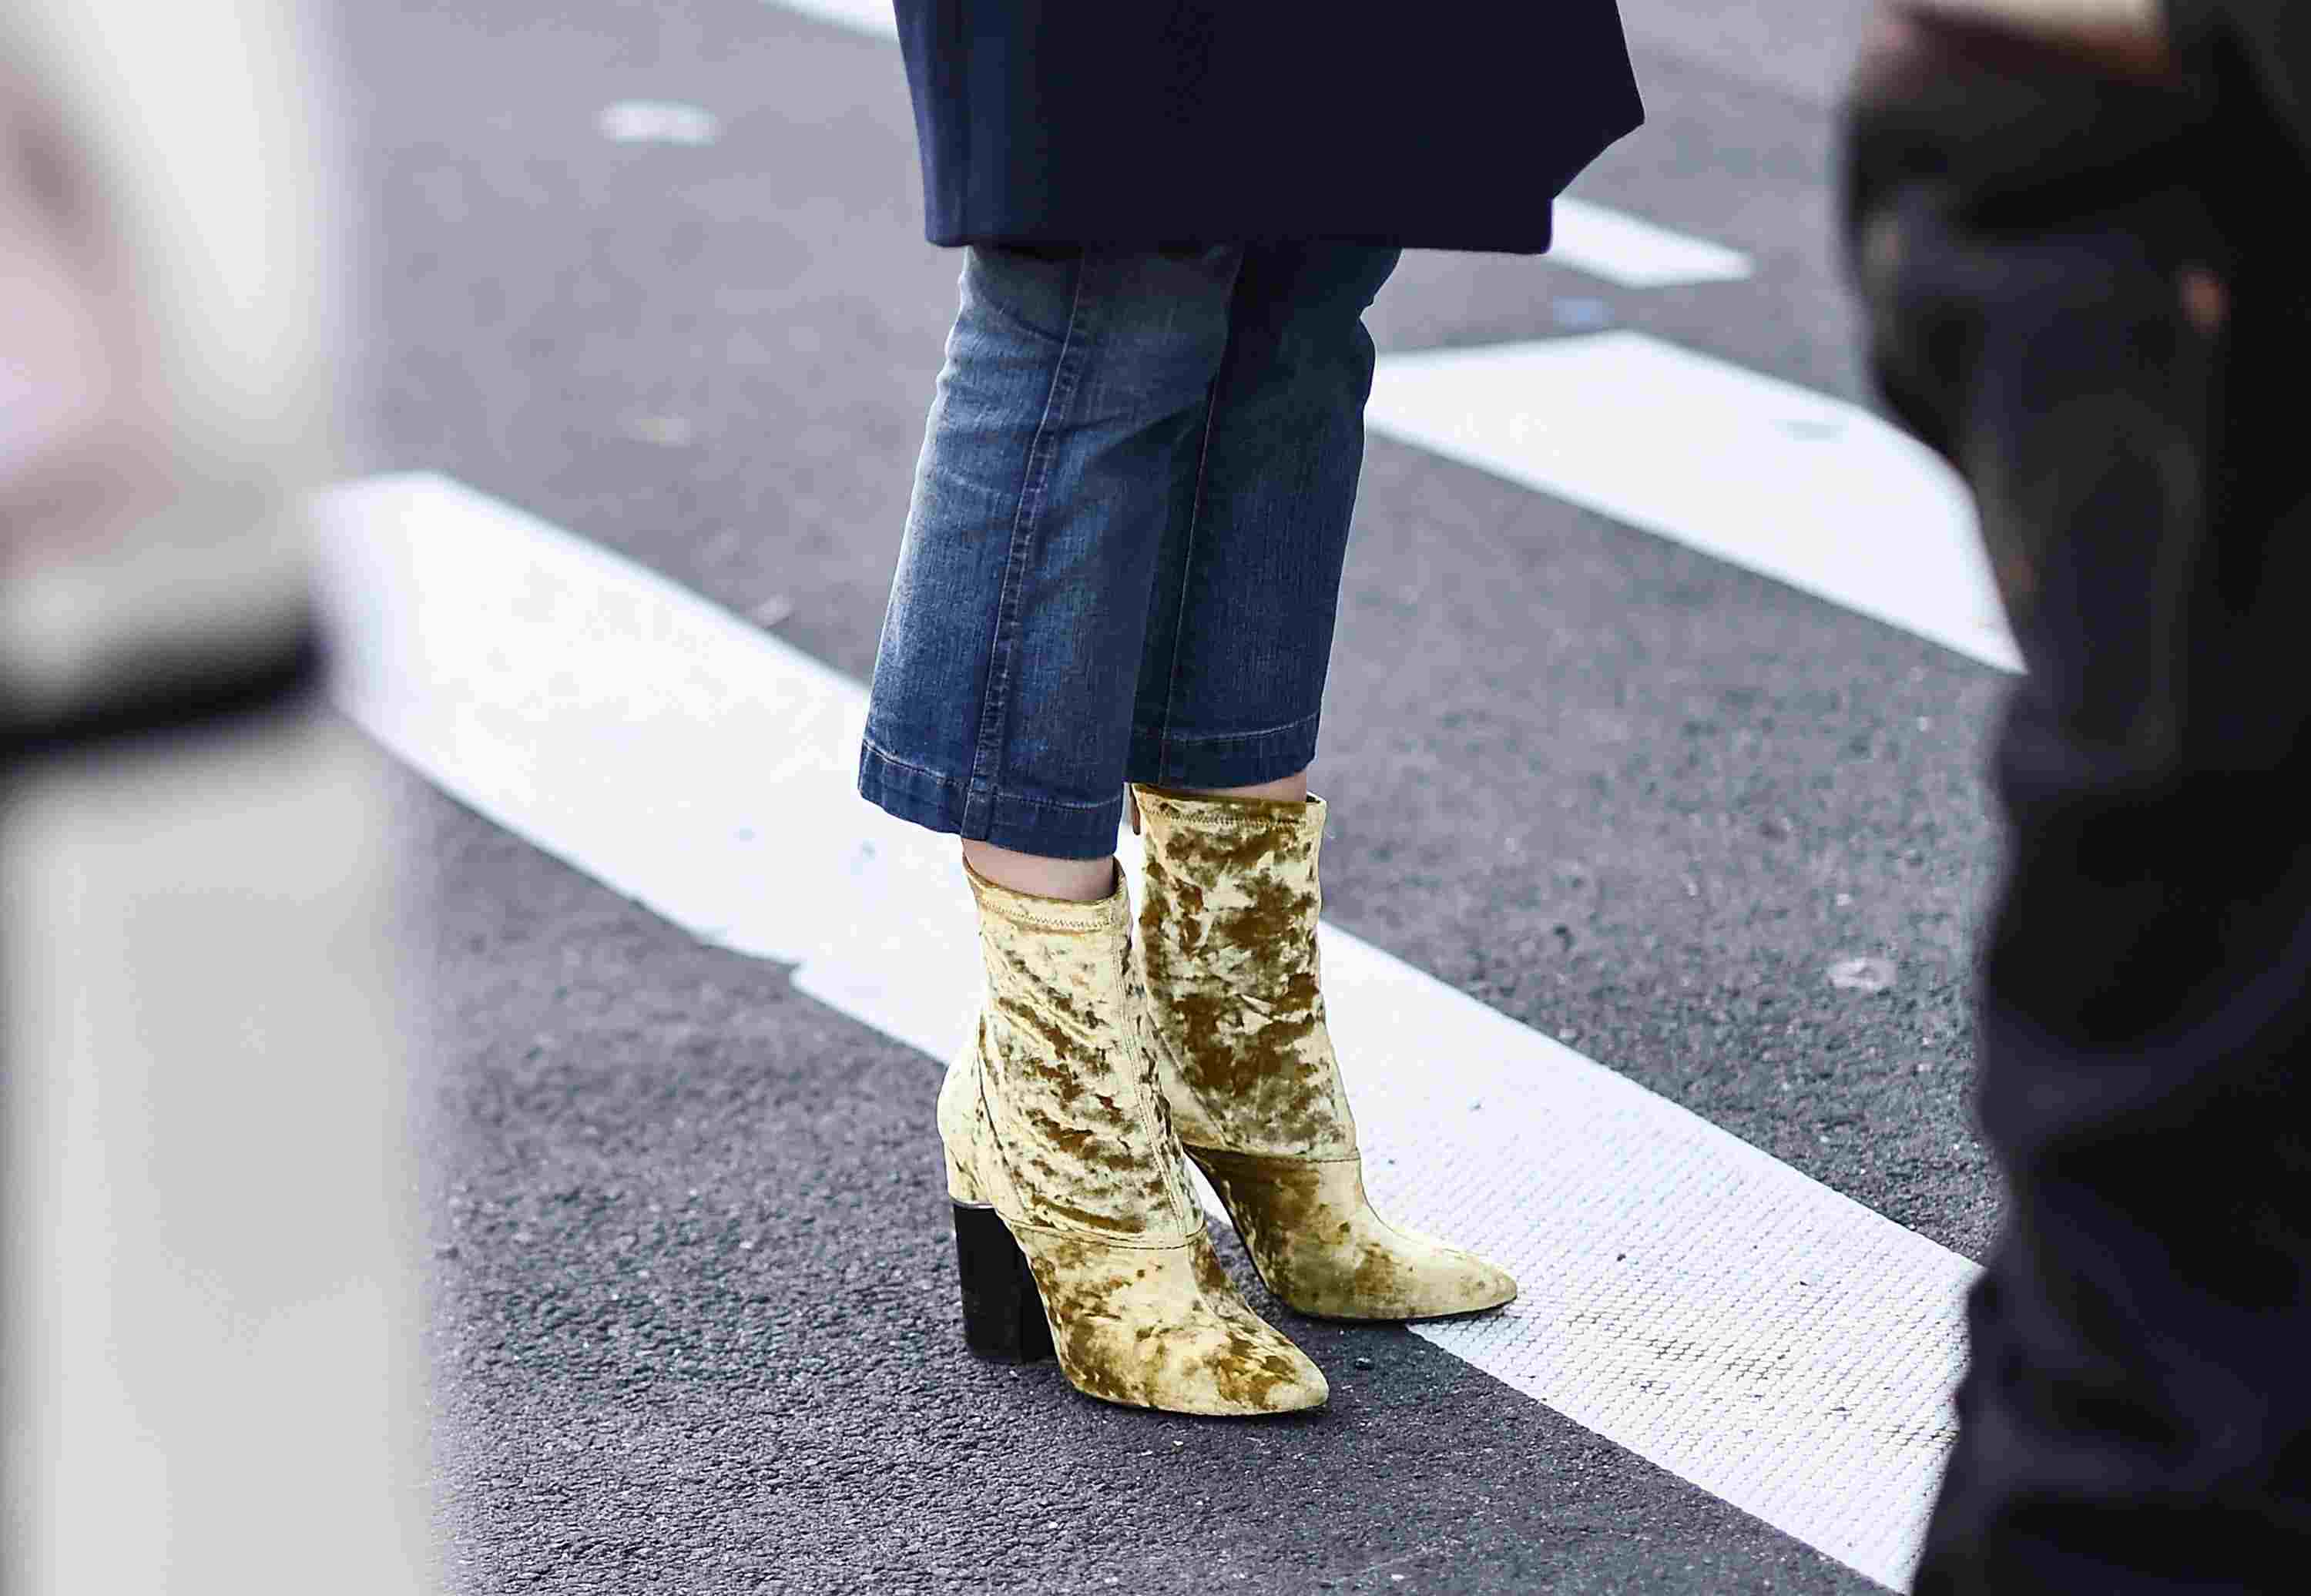 Woman's legs in jeans and gold ankle boots